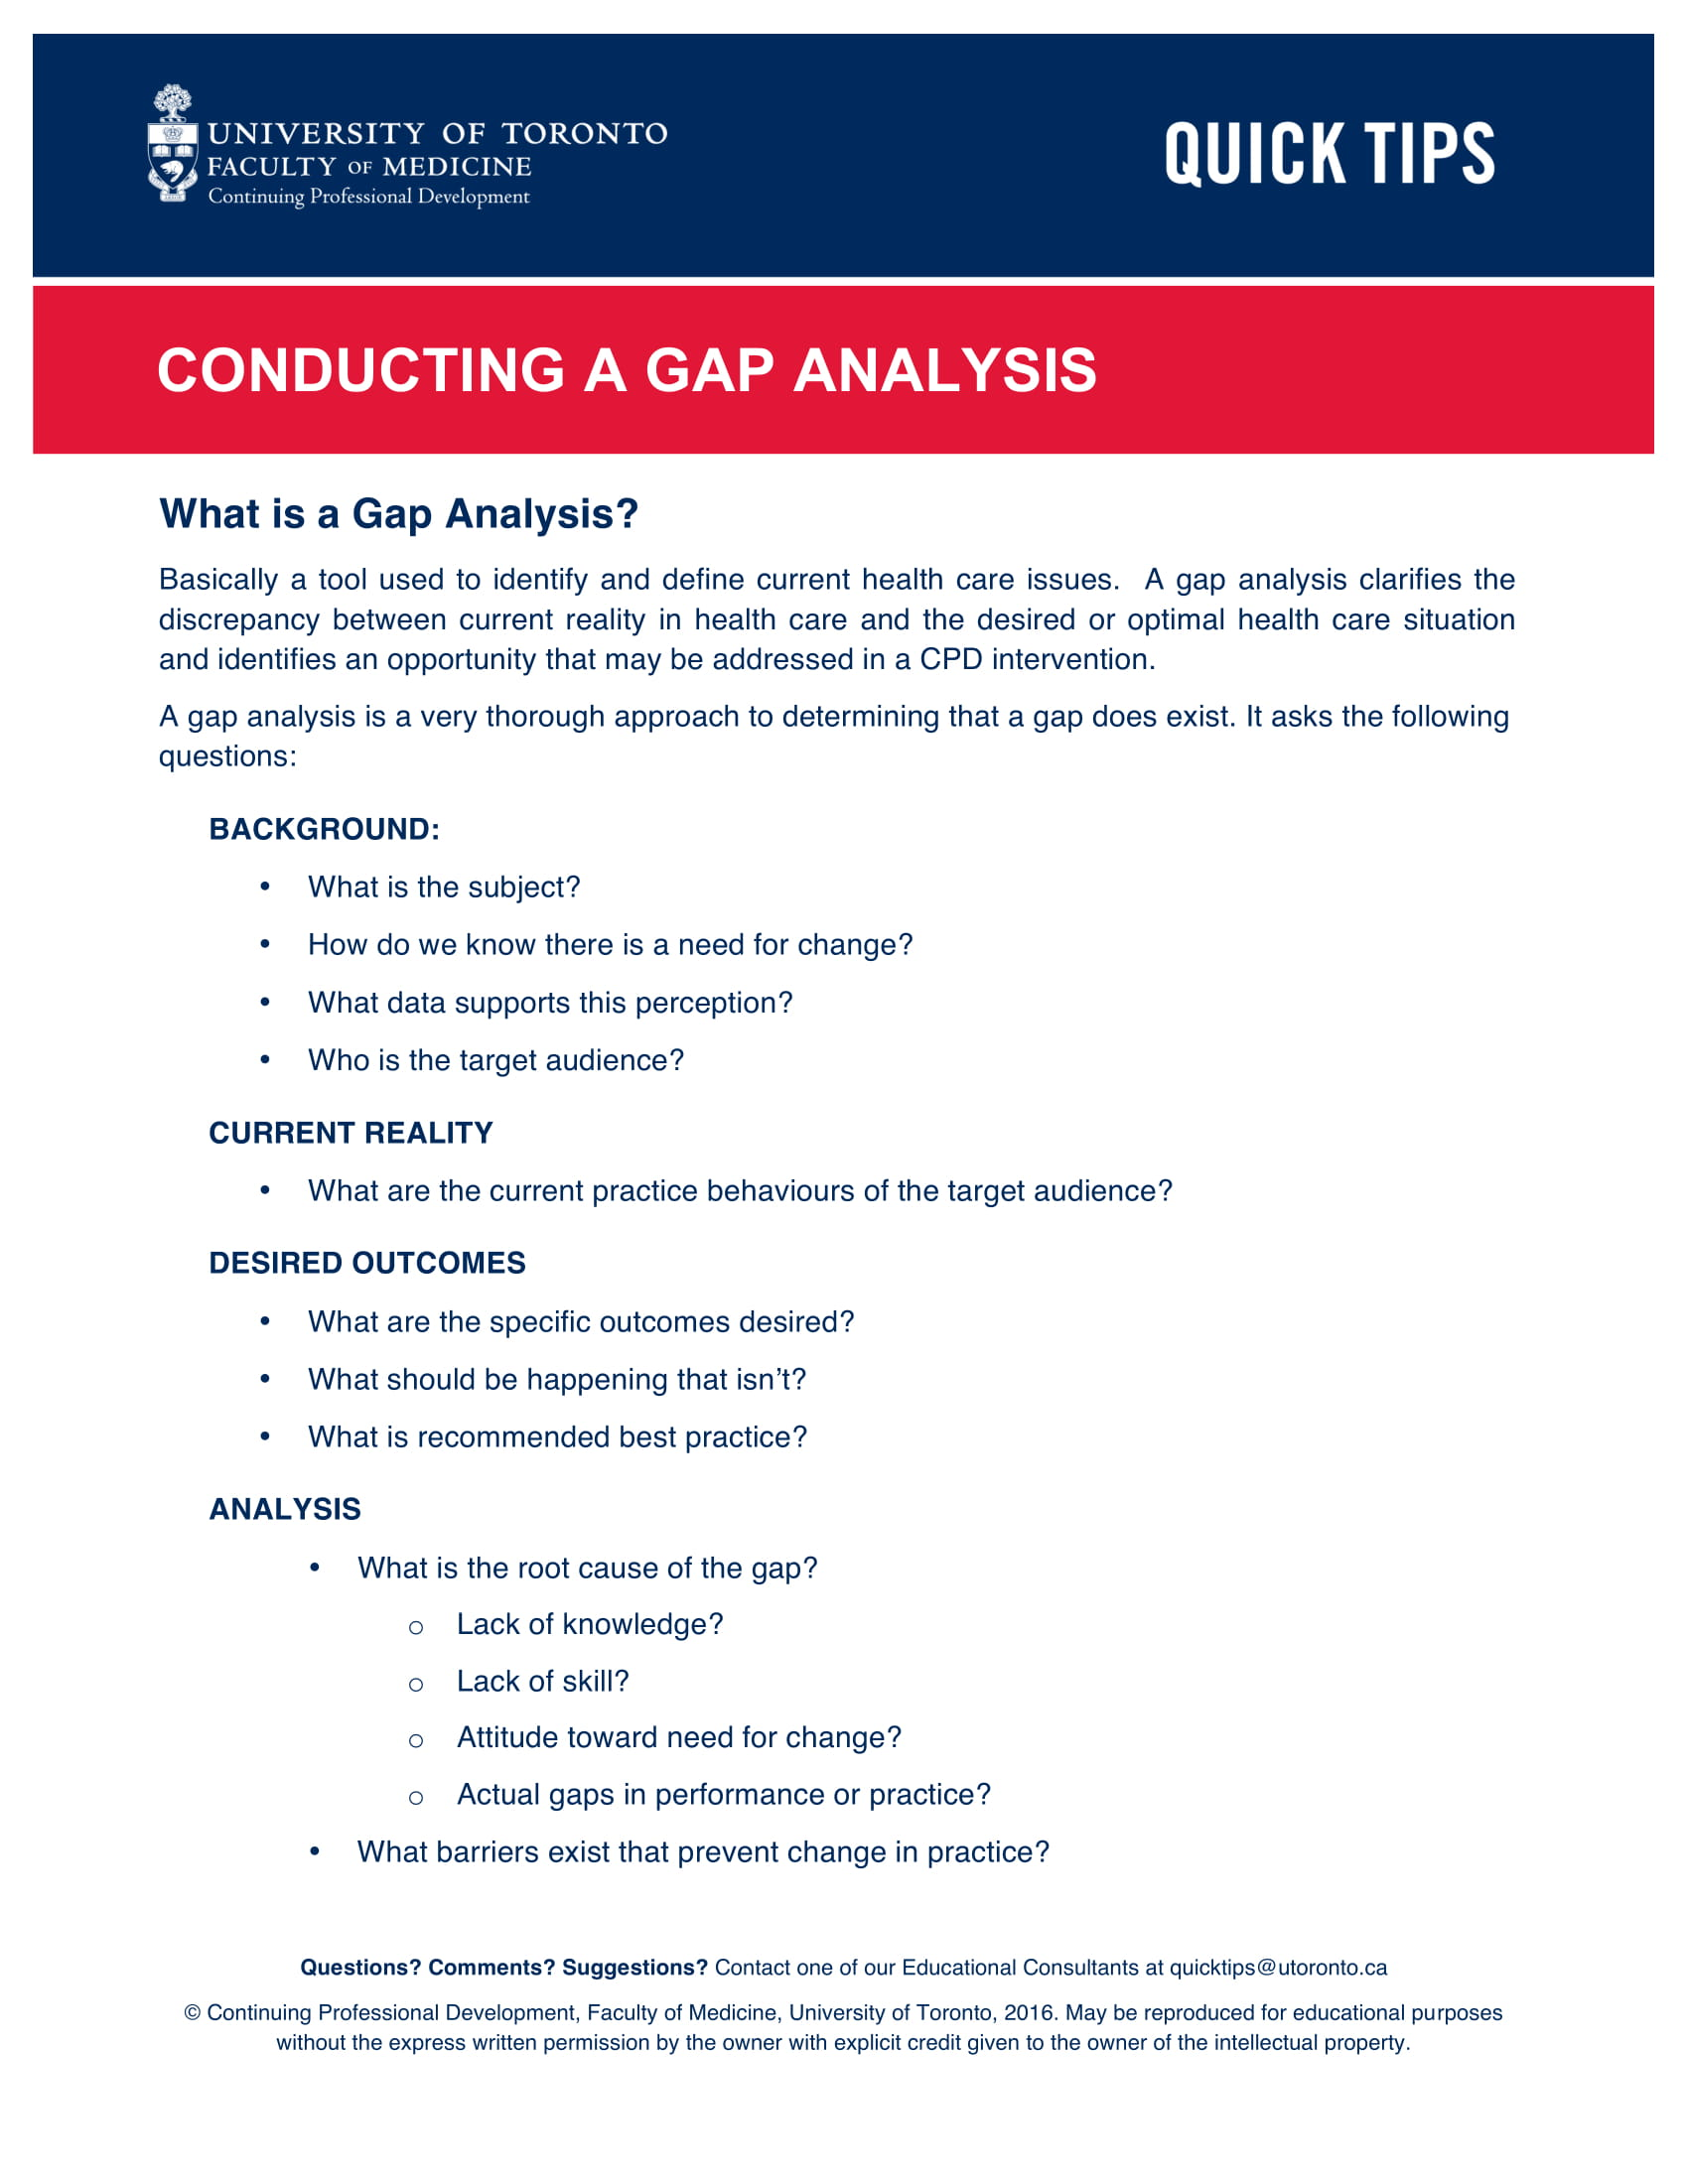 conducting a gap analysis in the healthcare industry example 1